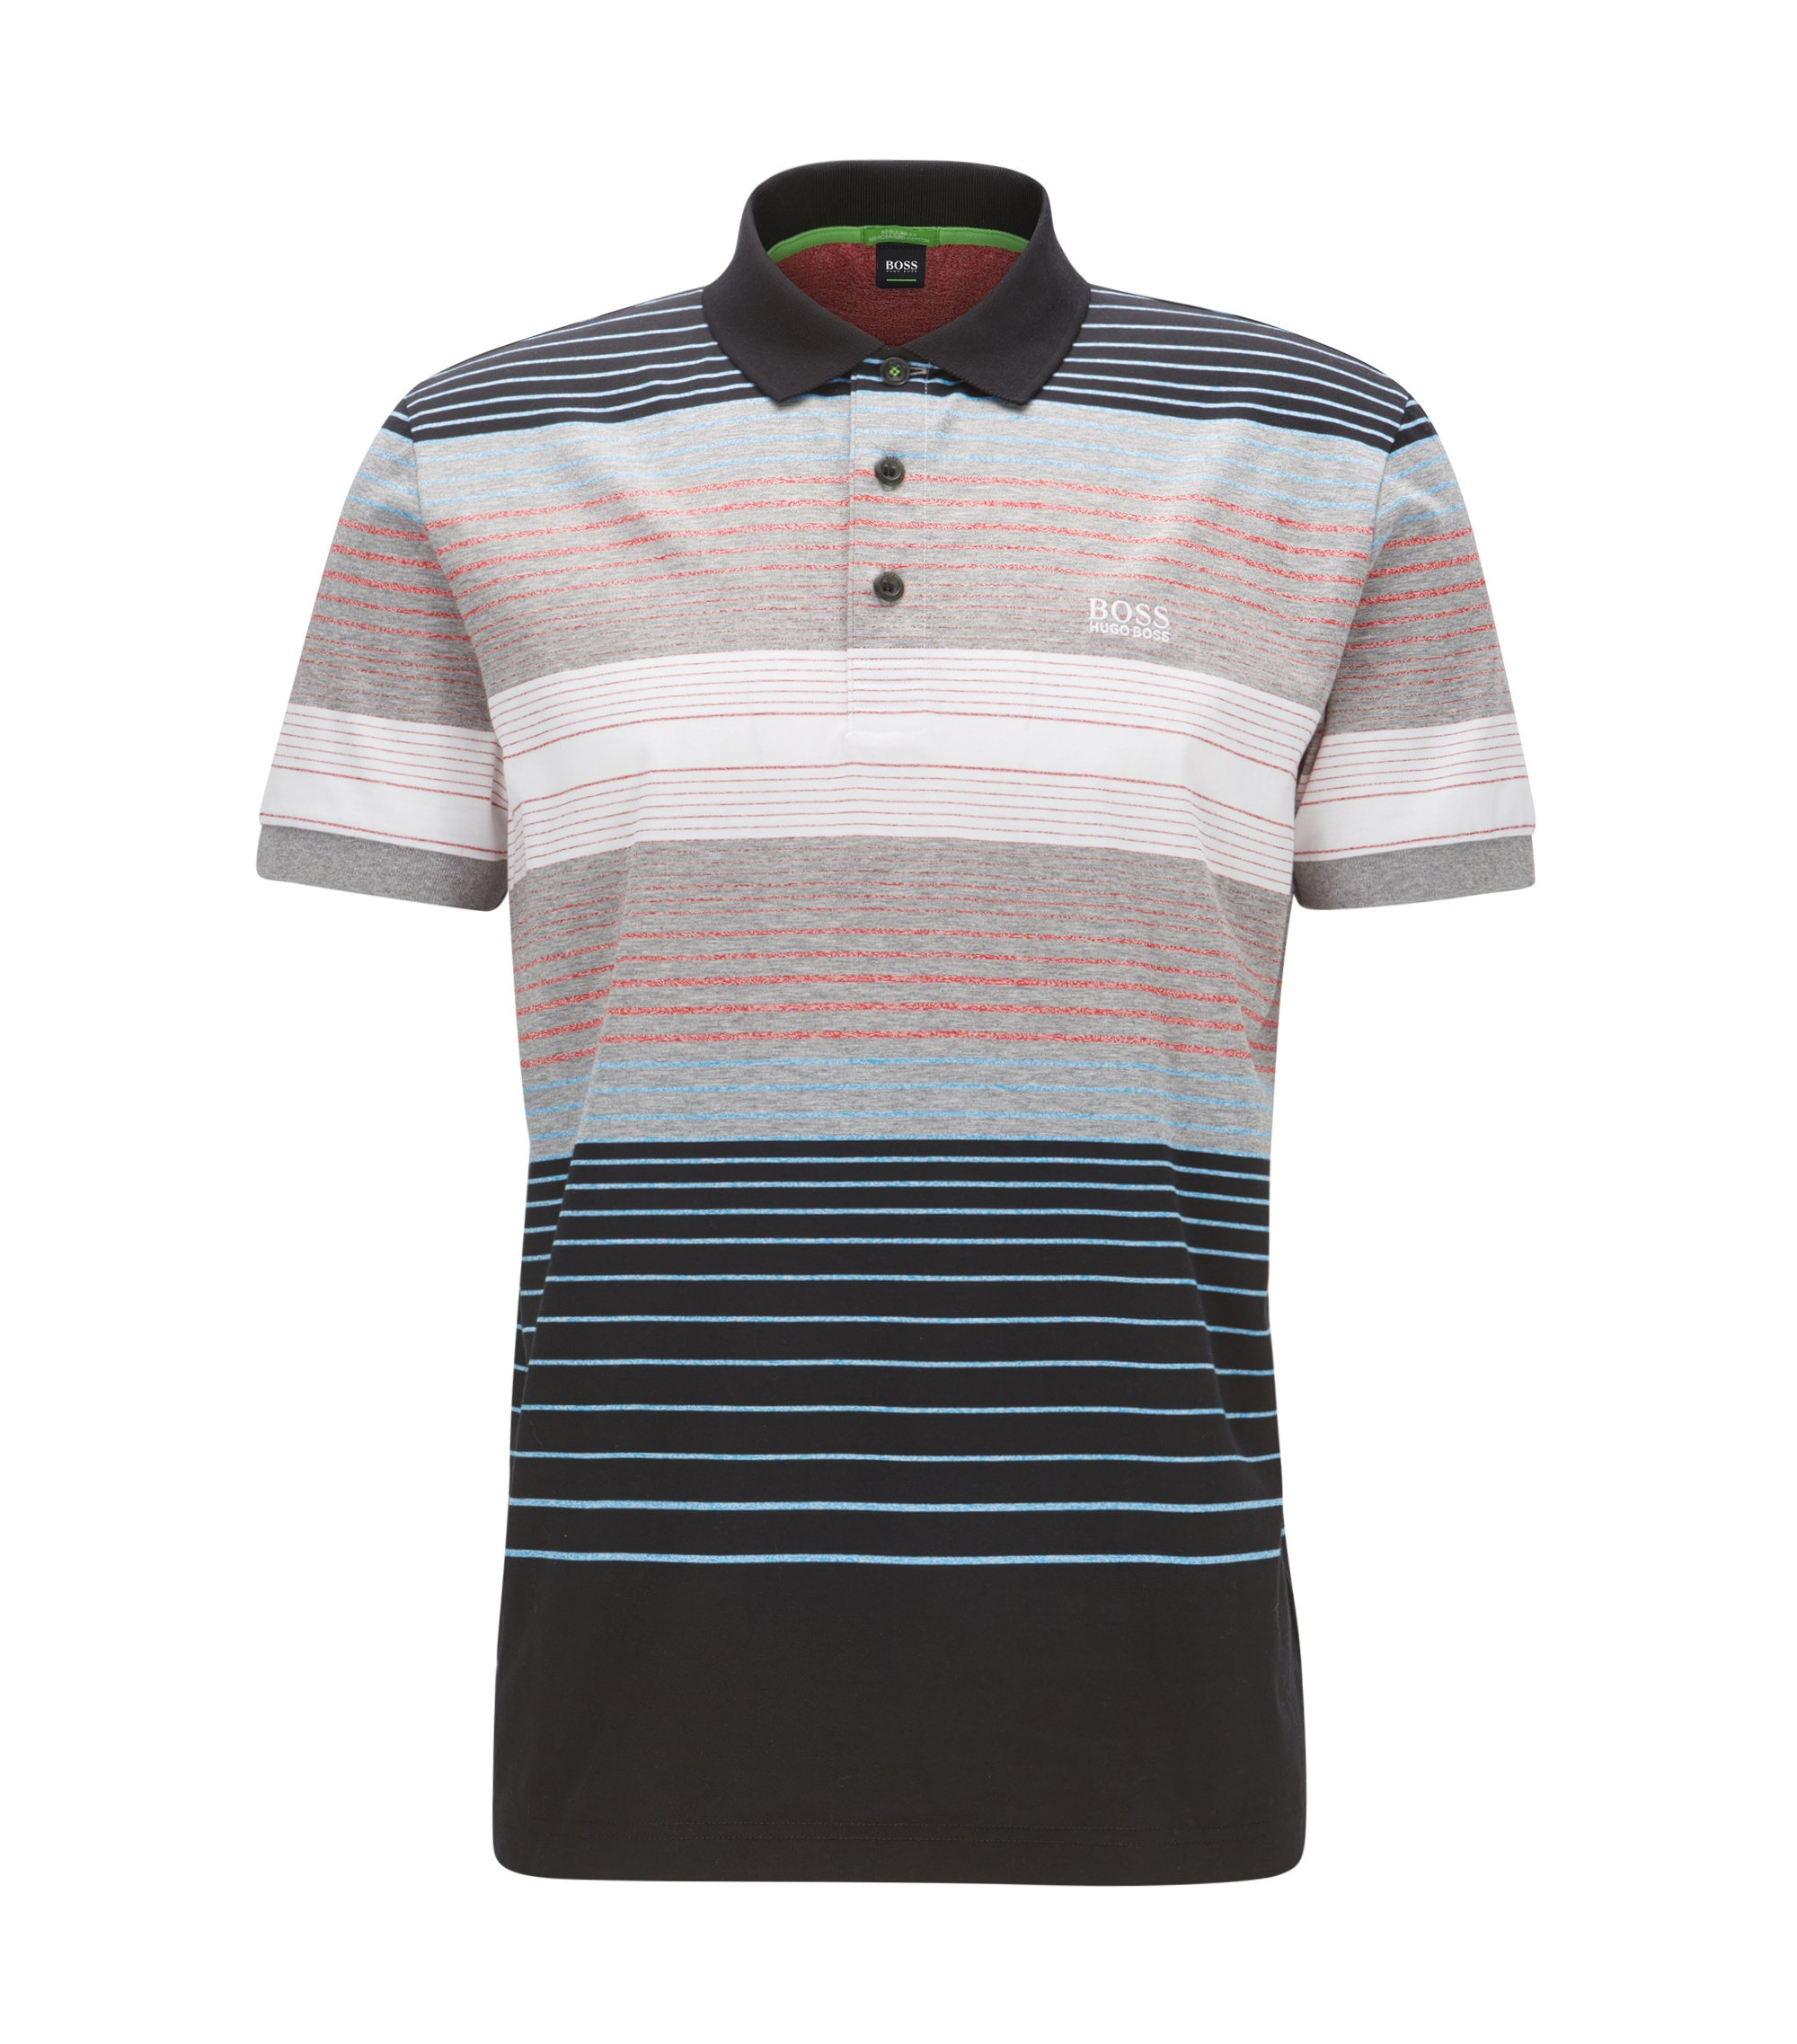 Striped Colorblocked Cotton Polo Shirt, Slim Fit | Paddy, Black